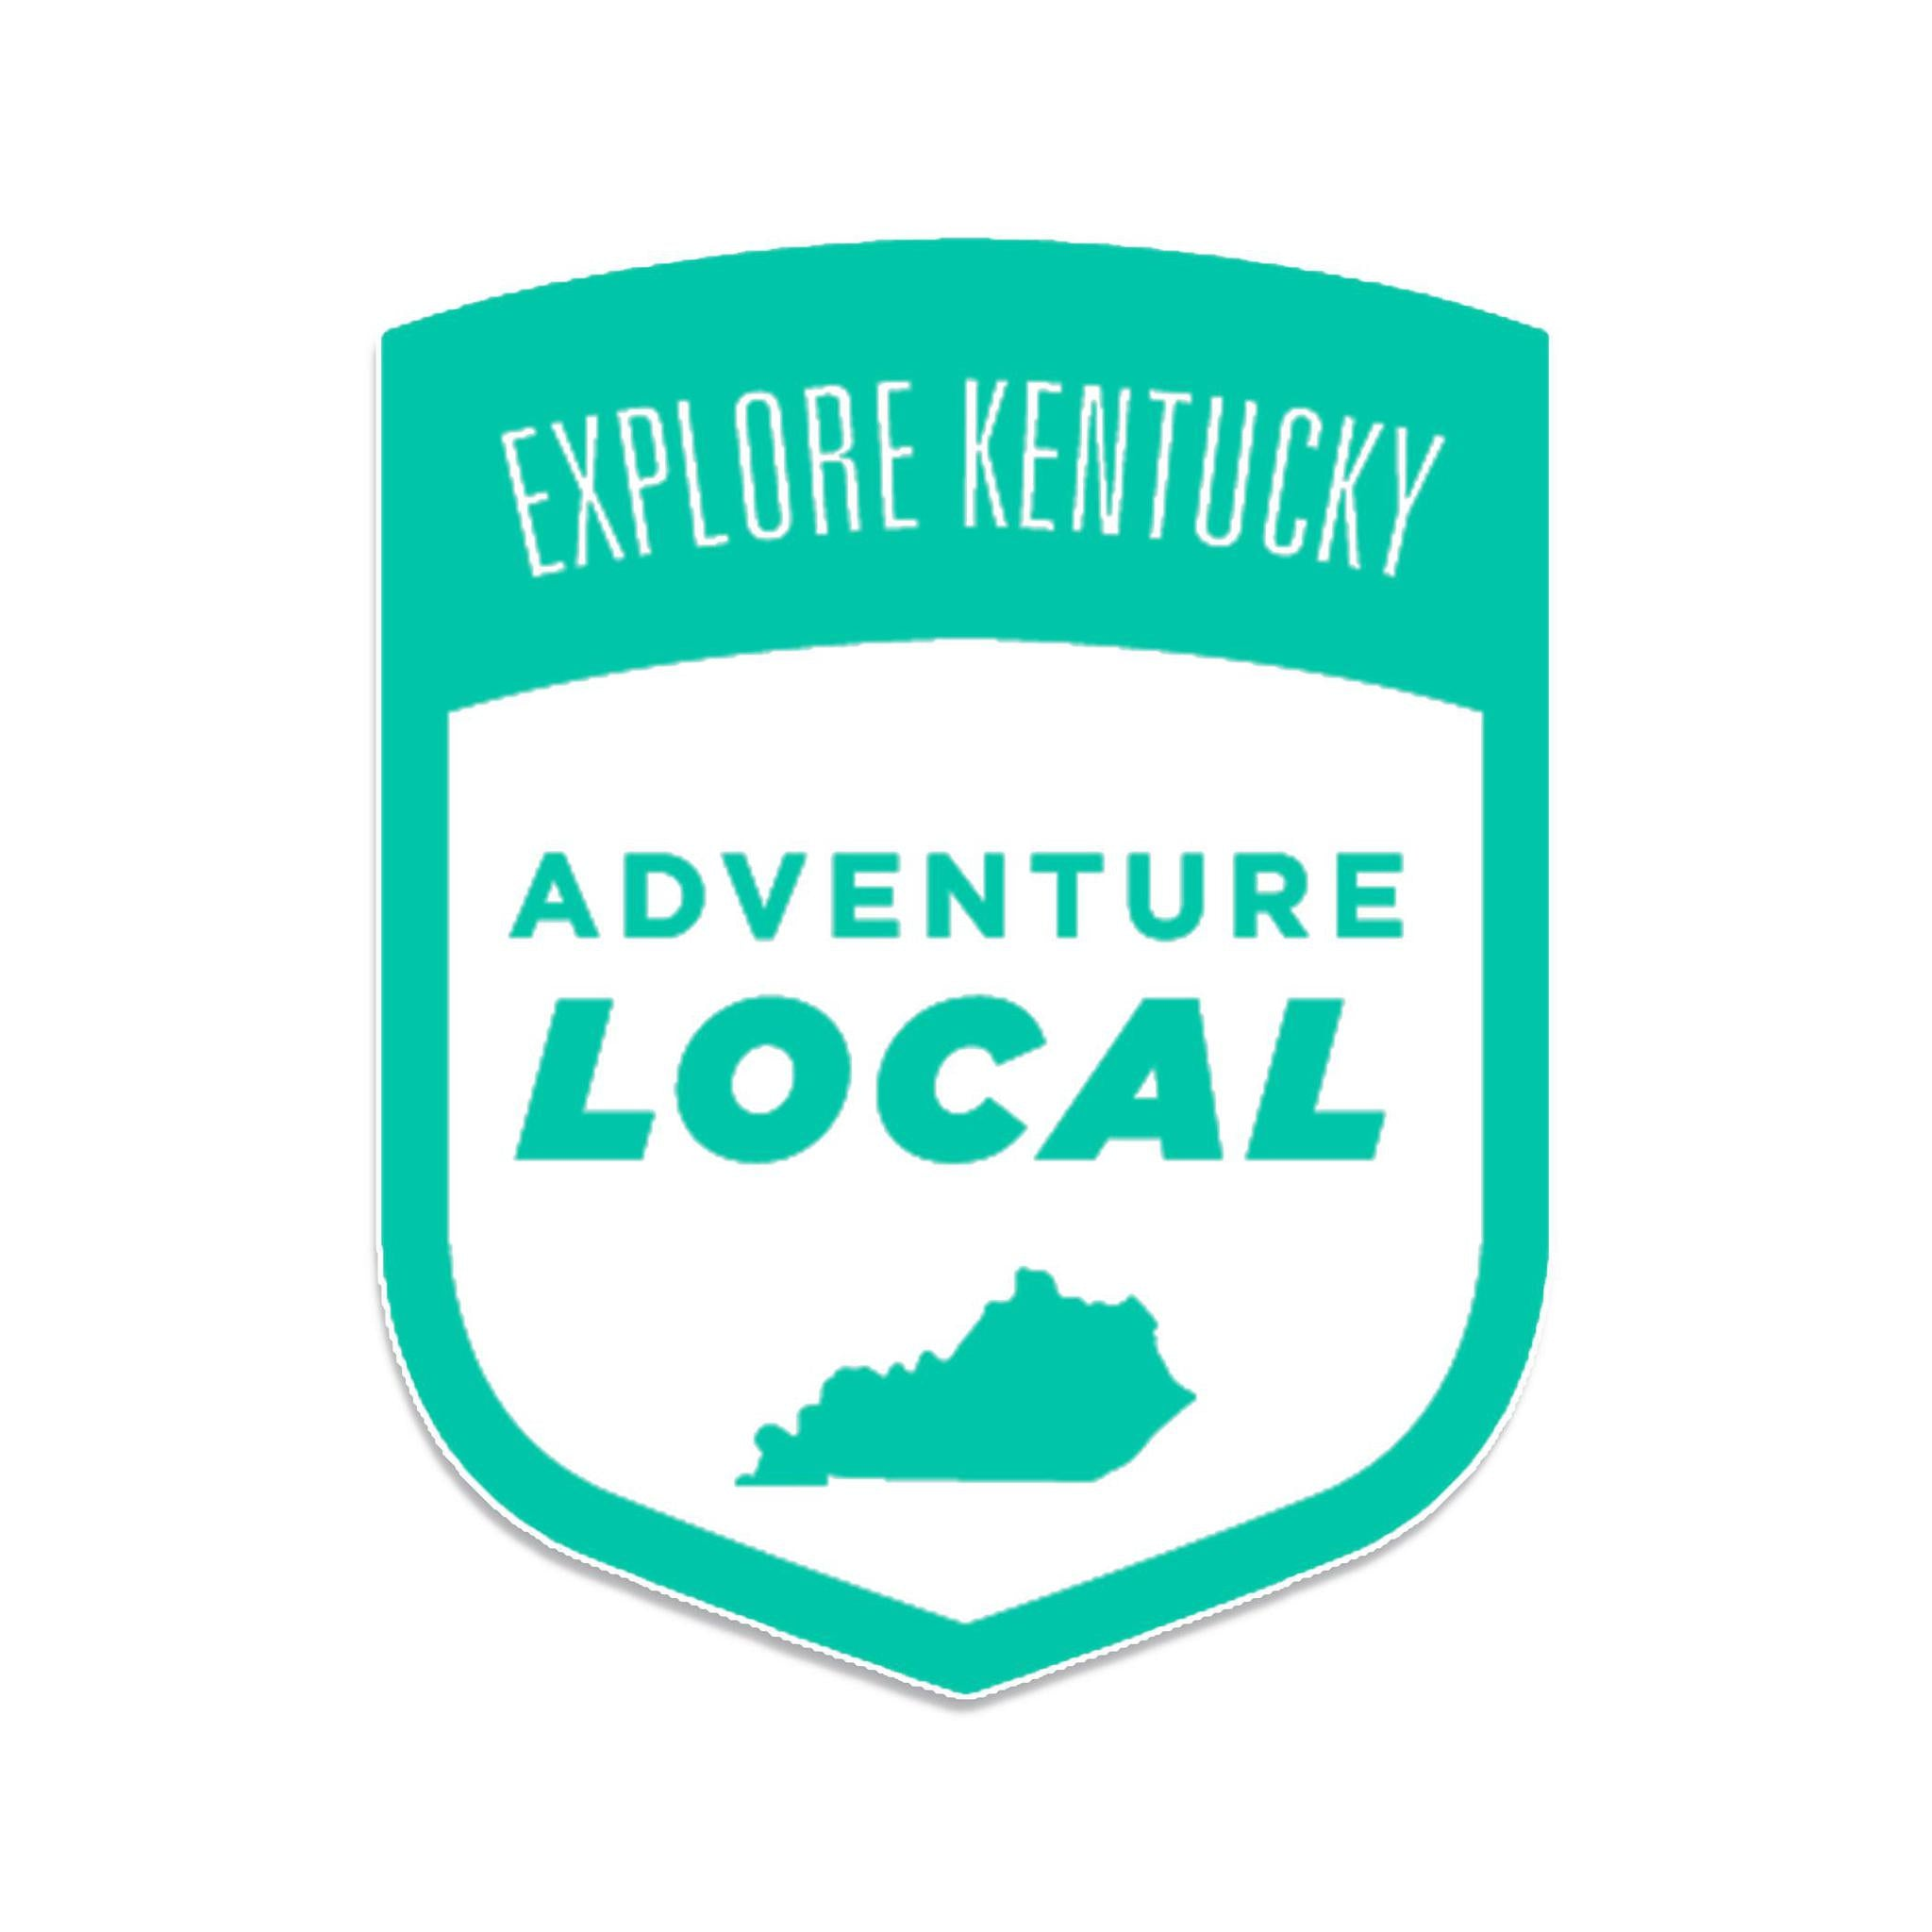 Explore Kentucky's Adventure Local Sticker (Mint Green)-KY for KY Store